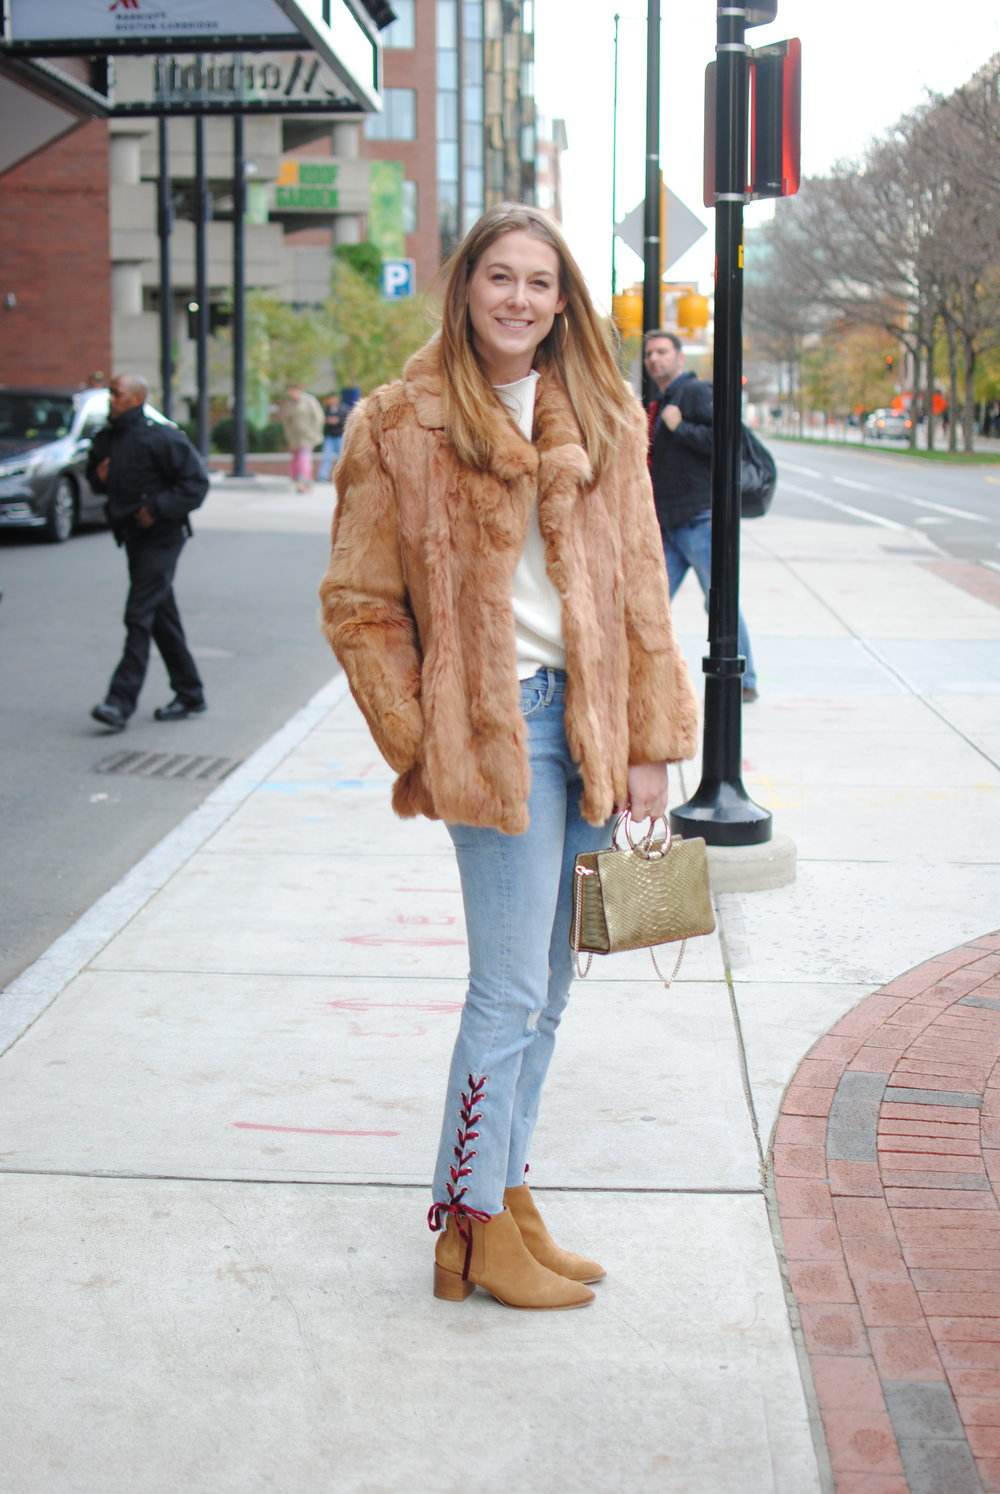 Rebecca dressed in Anthropologie jeans, Henri Bendel Bag and Everlane booties